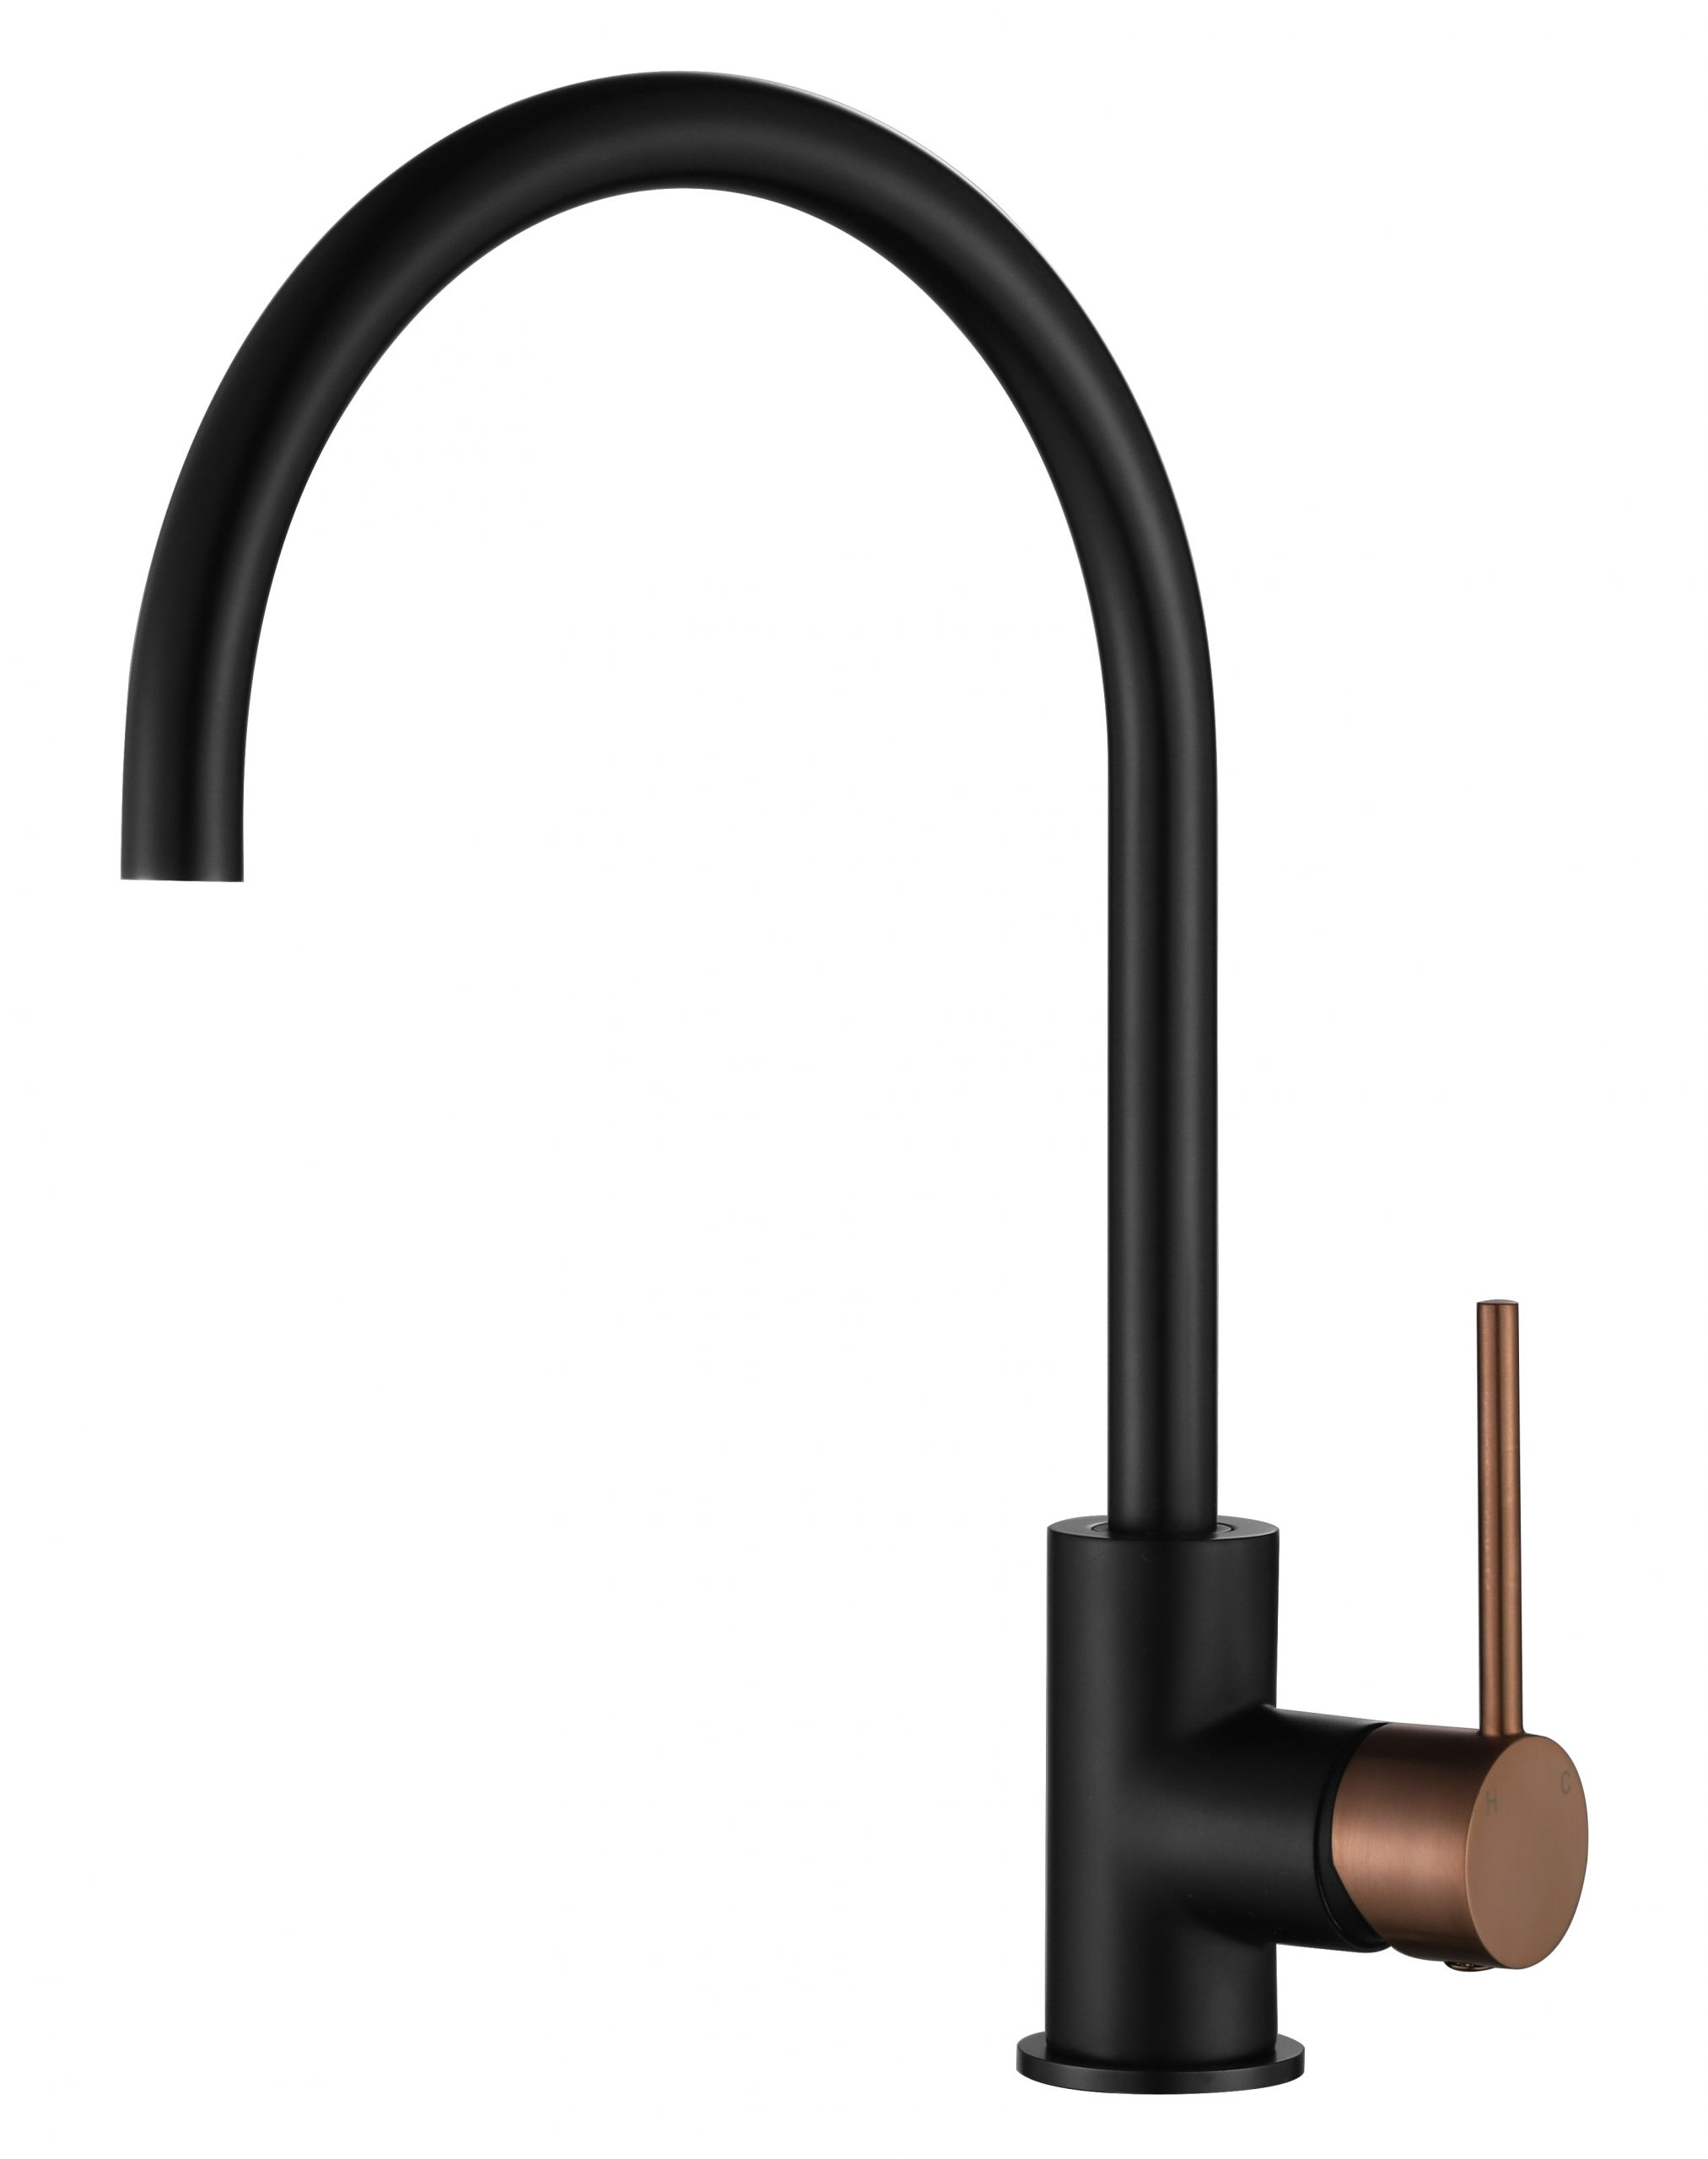 Star Mini Kitchen Mixer-Matt Black & PVD Champagne